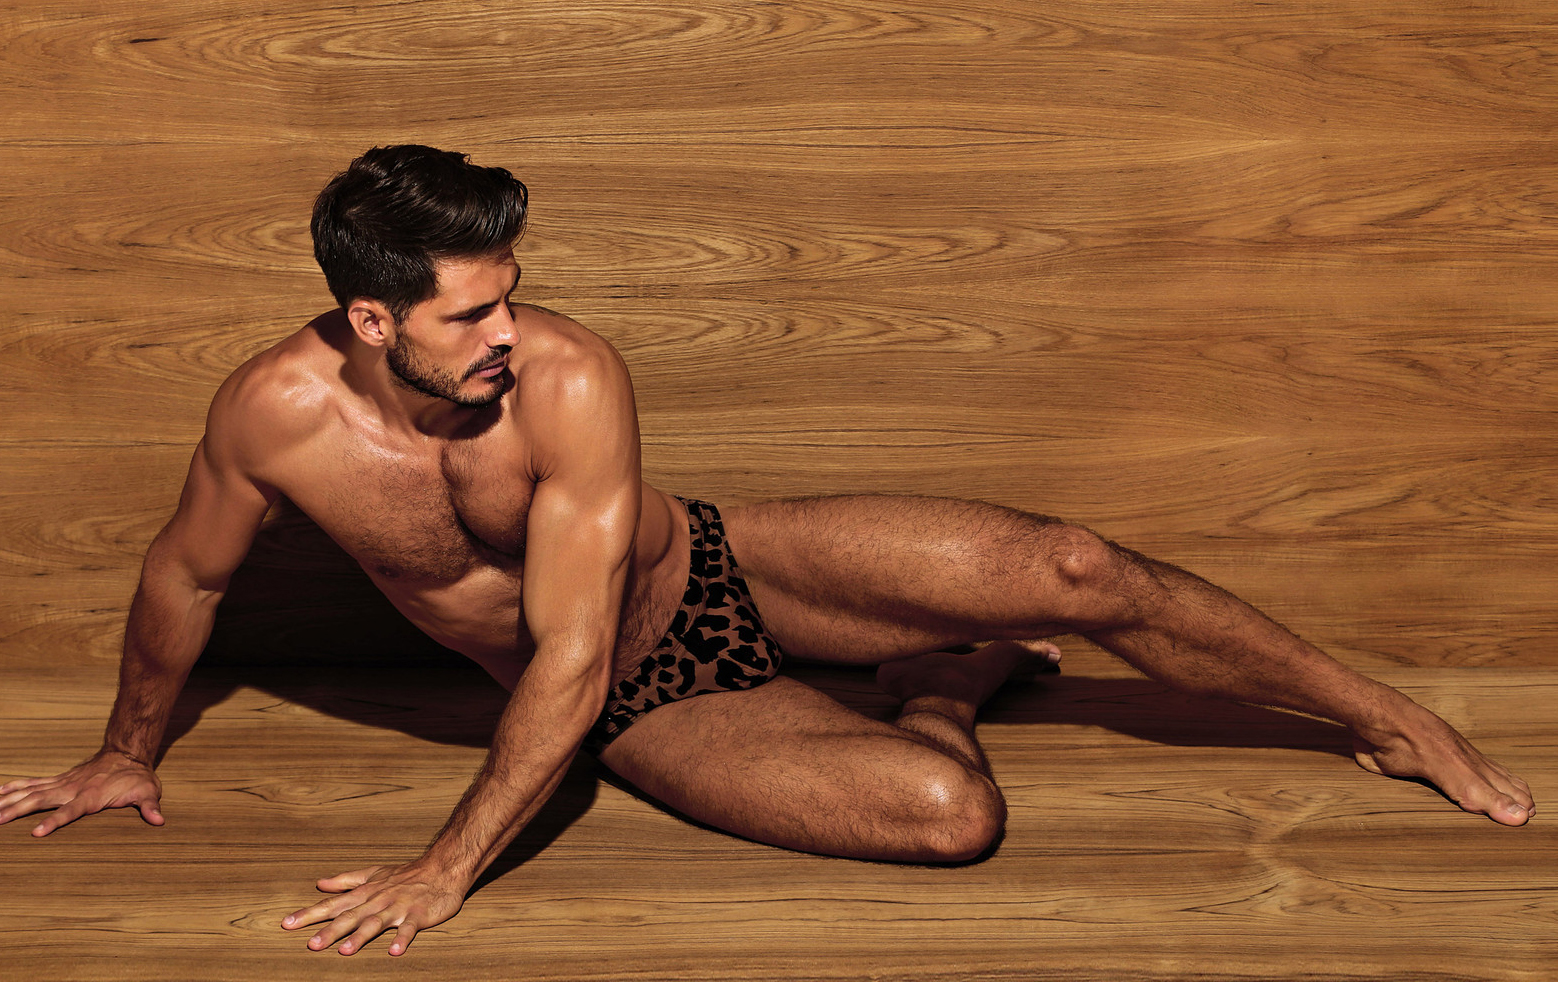 diego-miguel-charlie-by-matthew-zink-animalier-collection-002